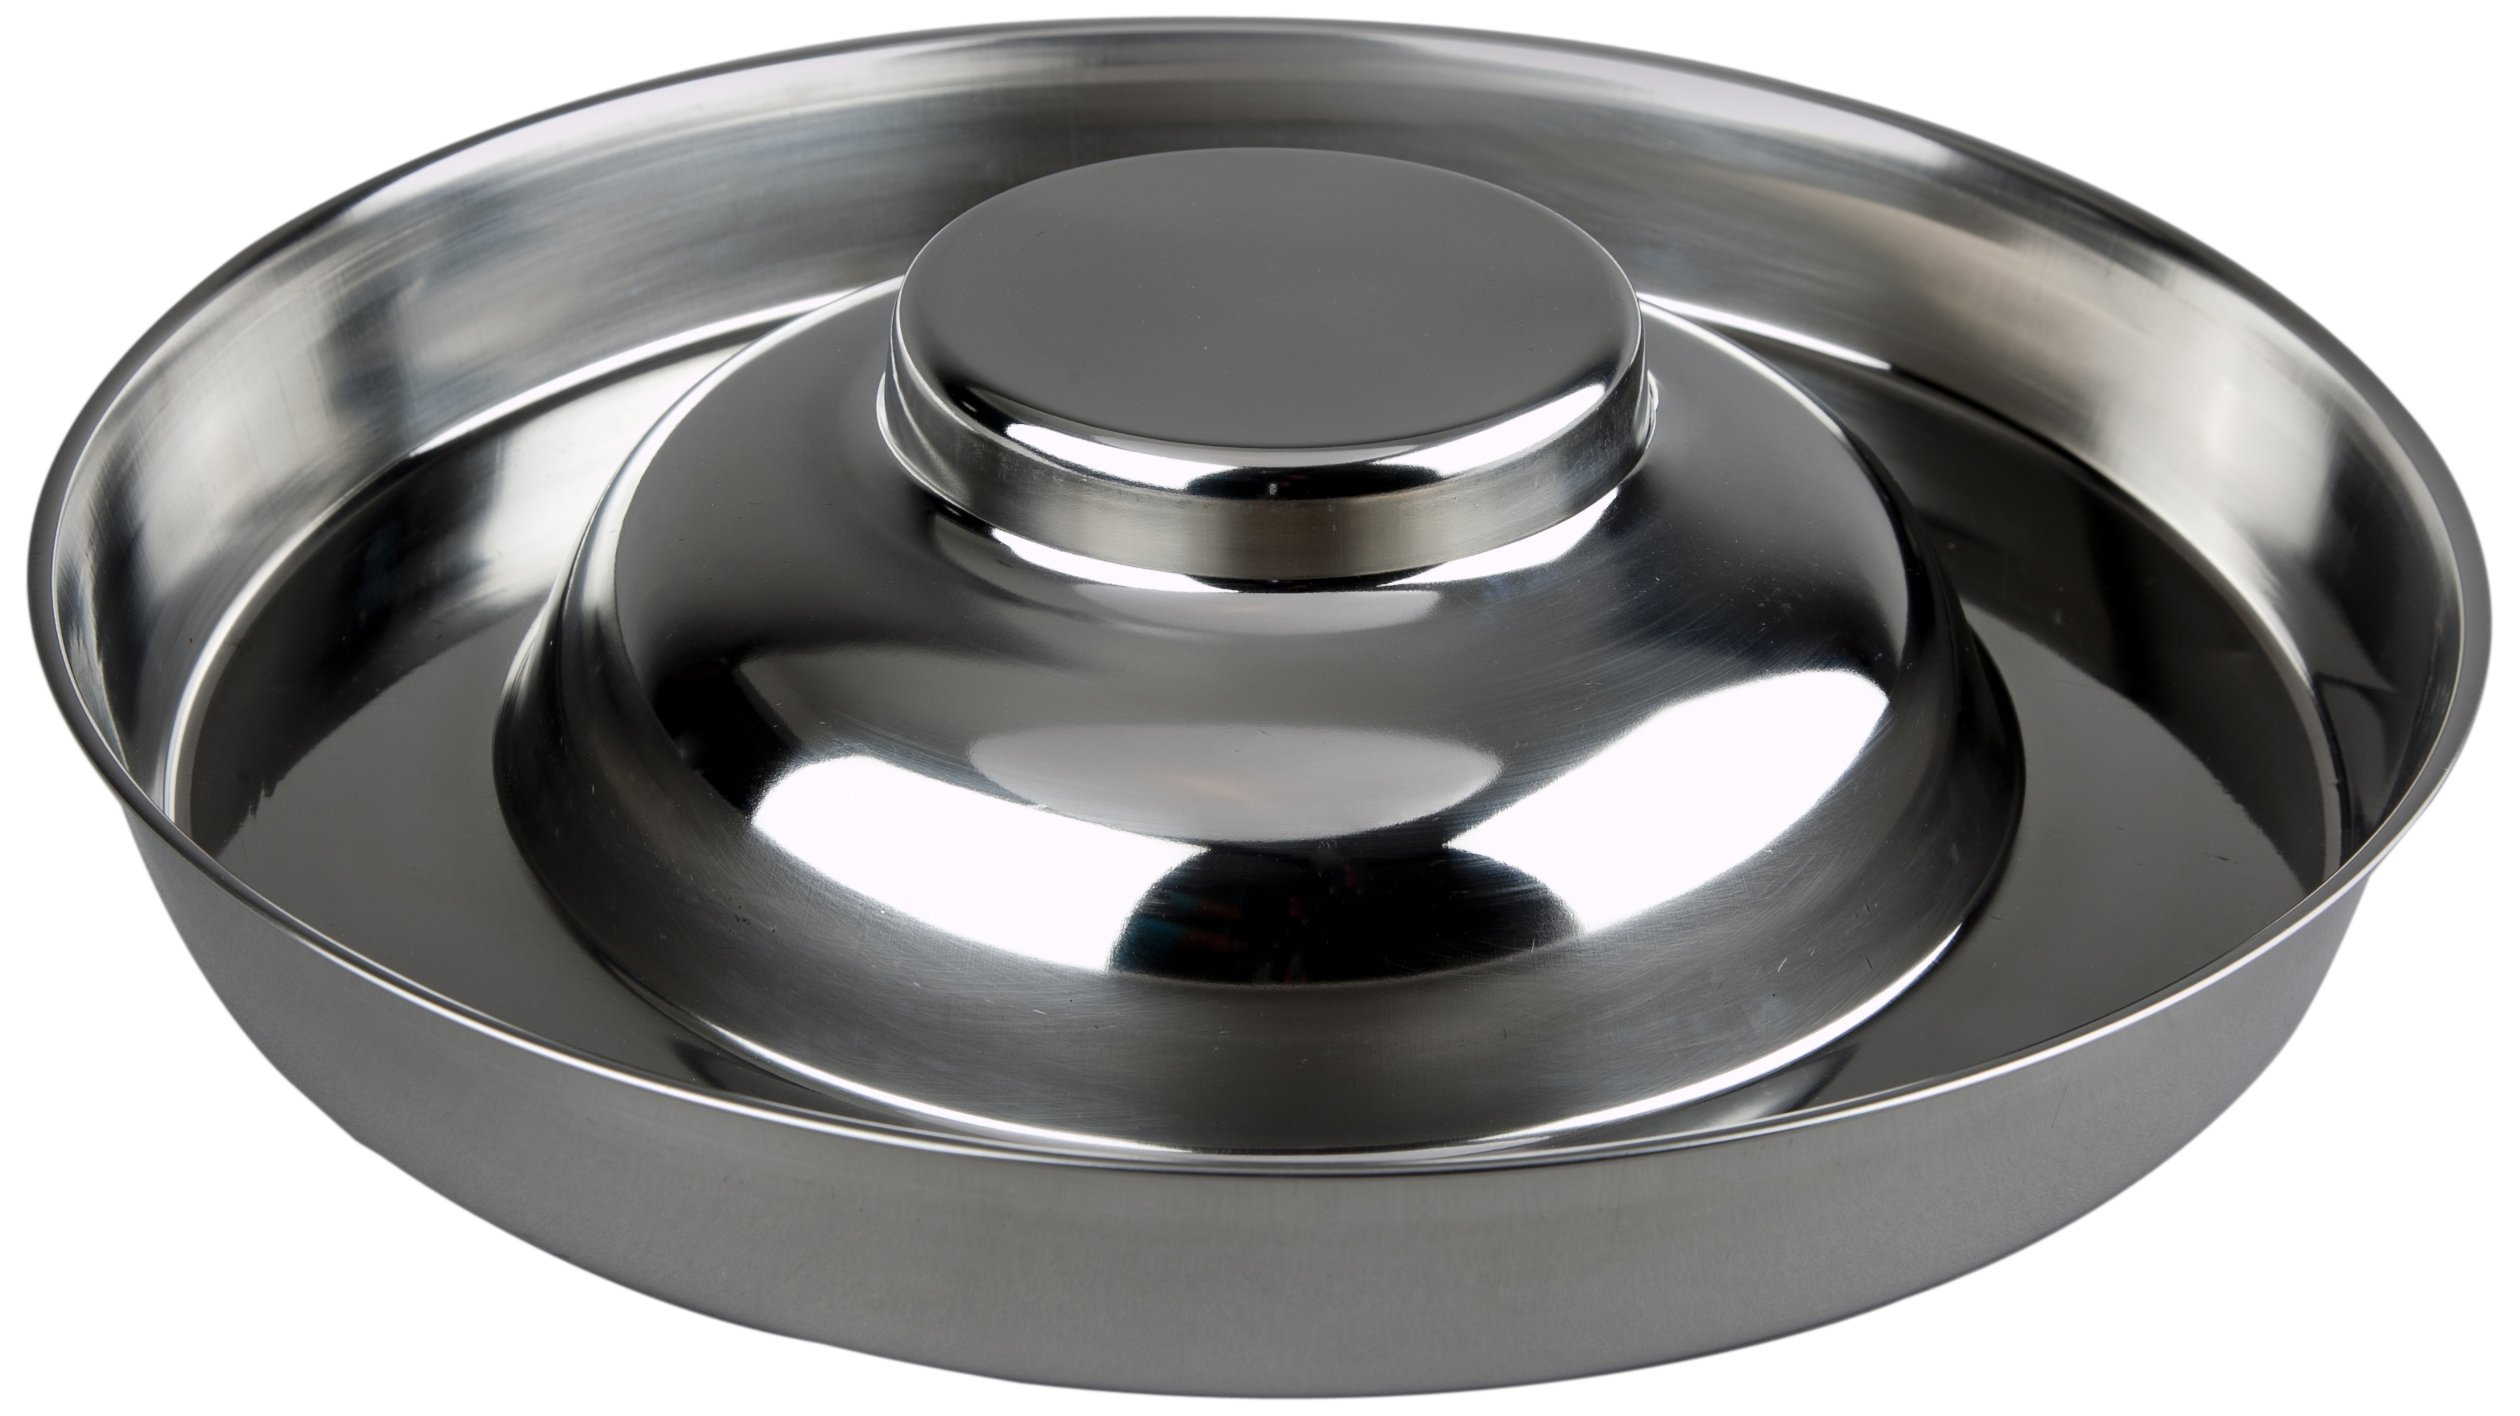 Advance Pet Products Stainless Steel Flying Saucer, 15-Inch by Advance Pet Products